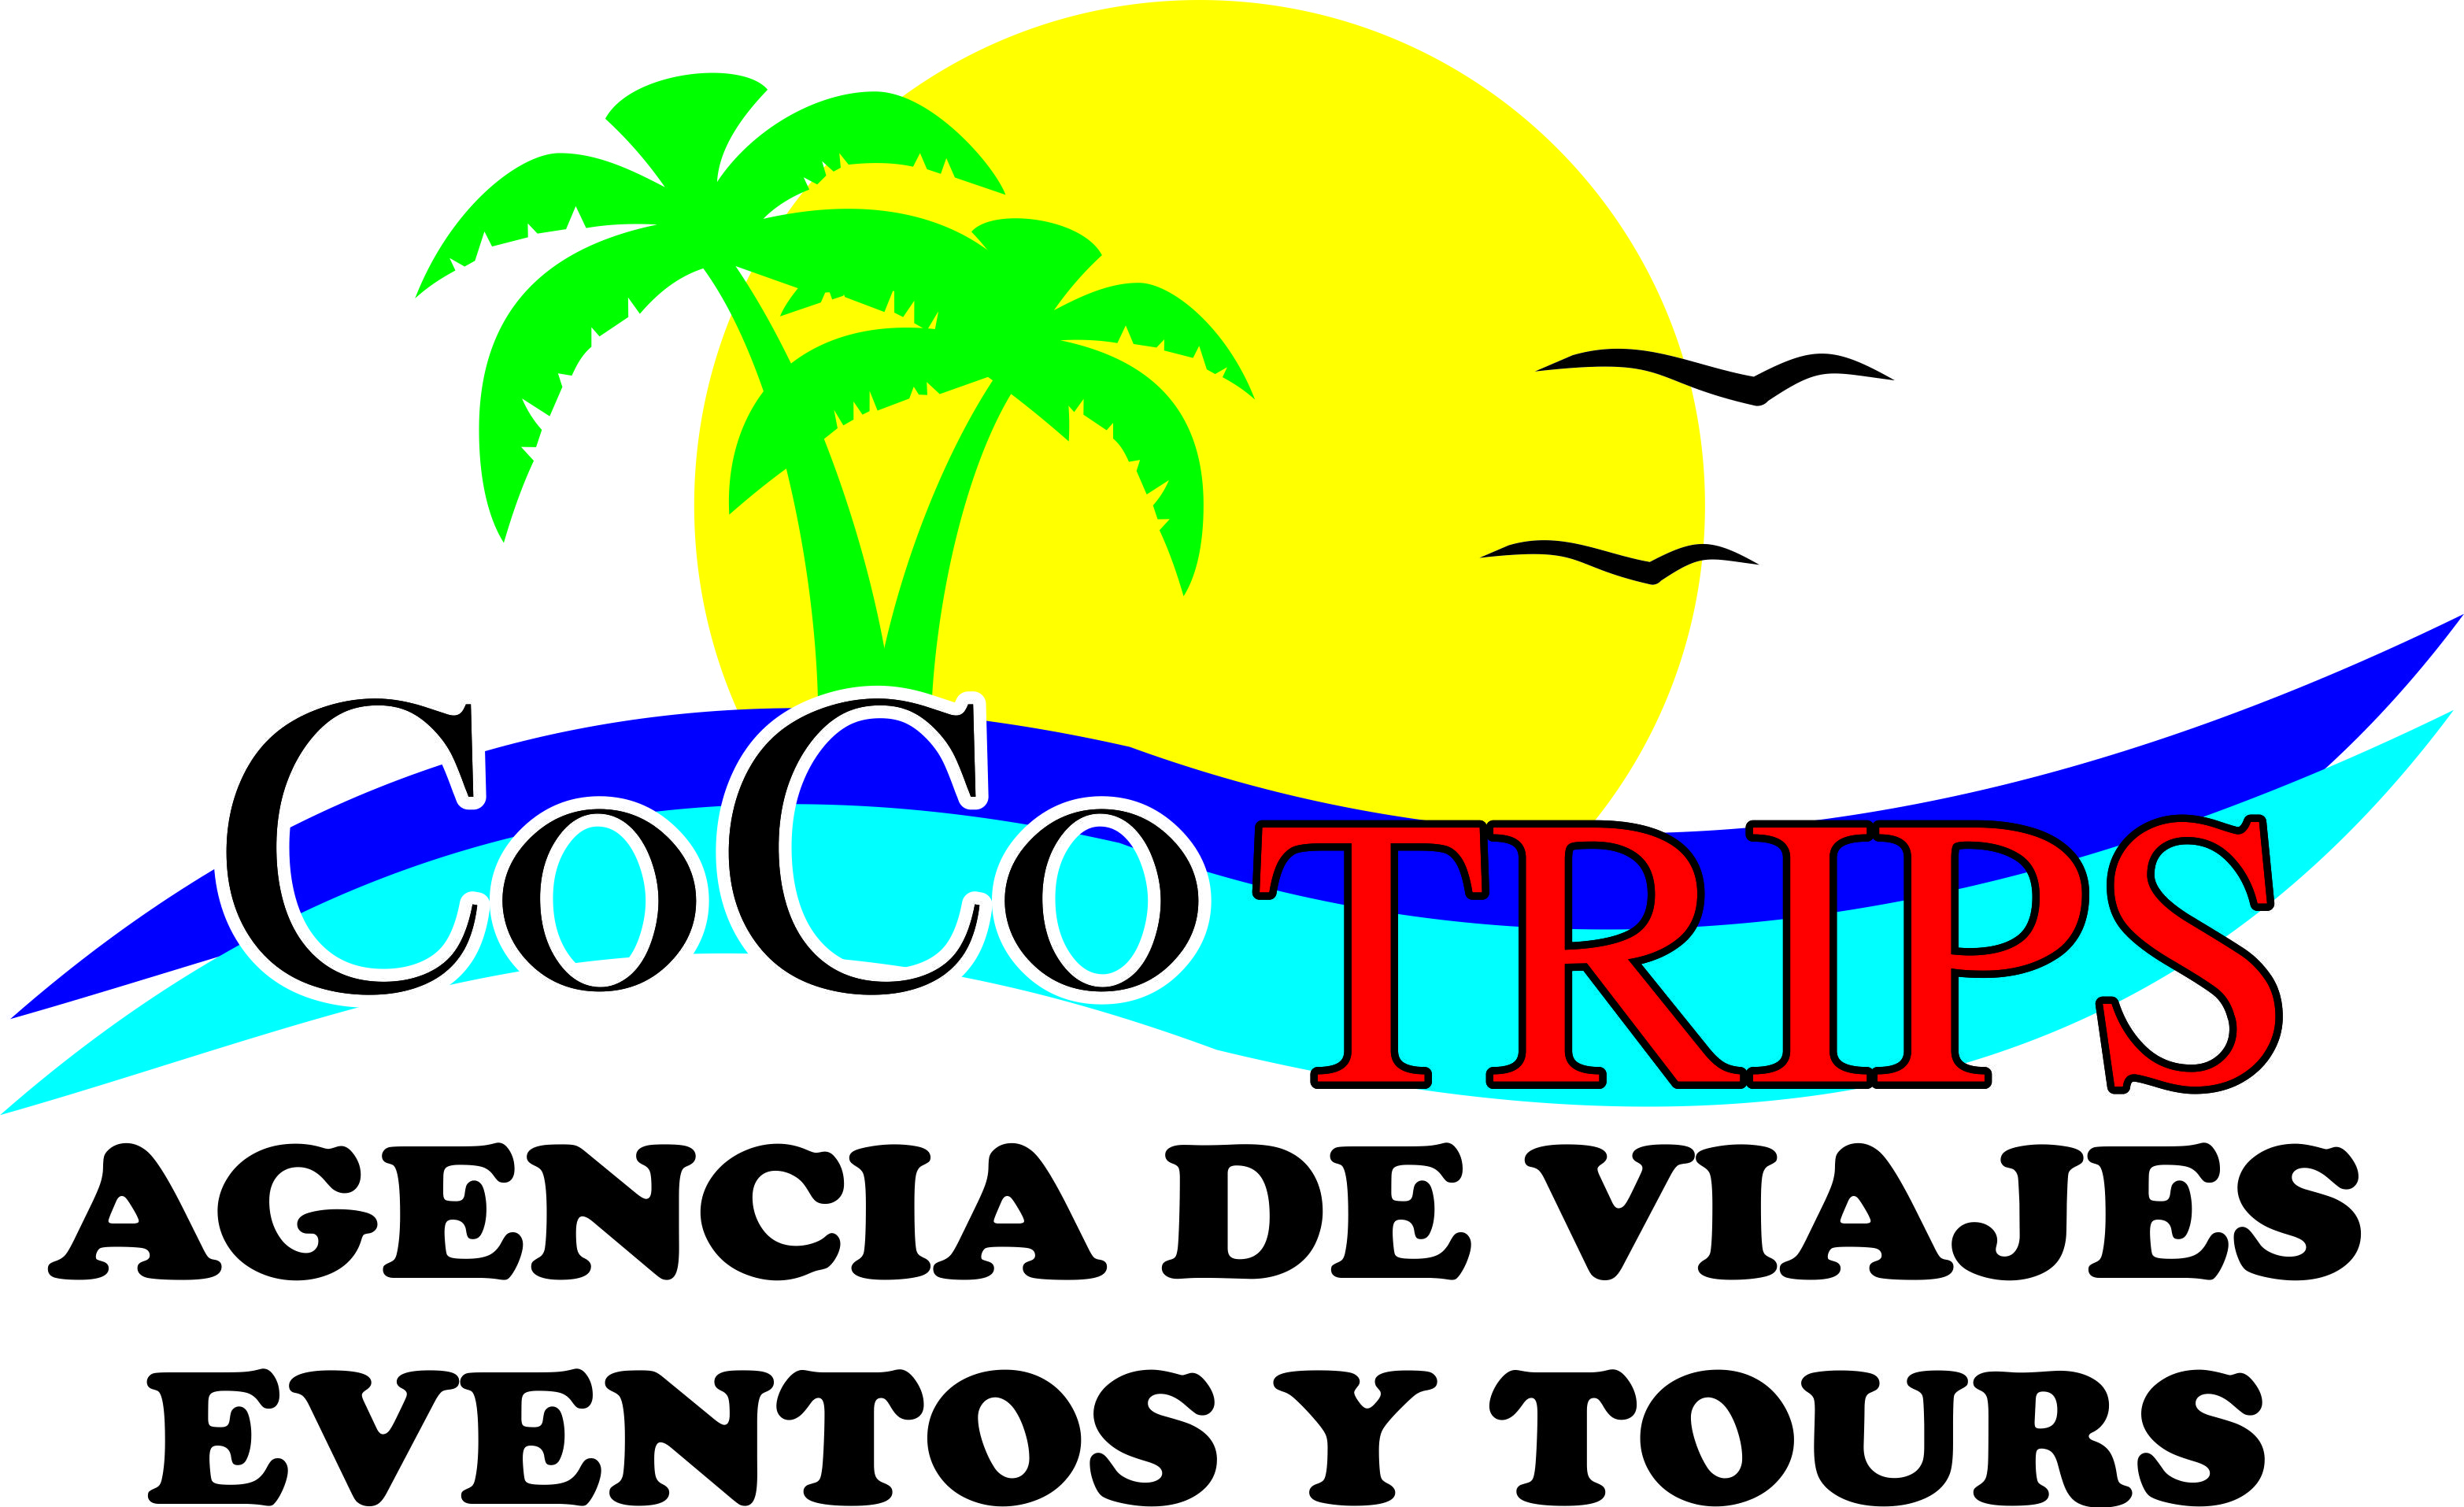 COCO TRIPS